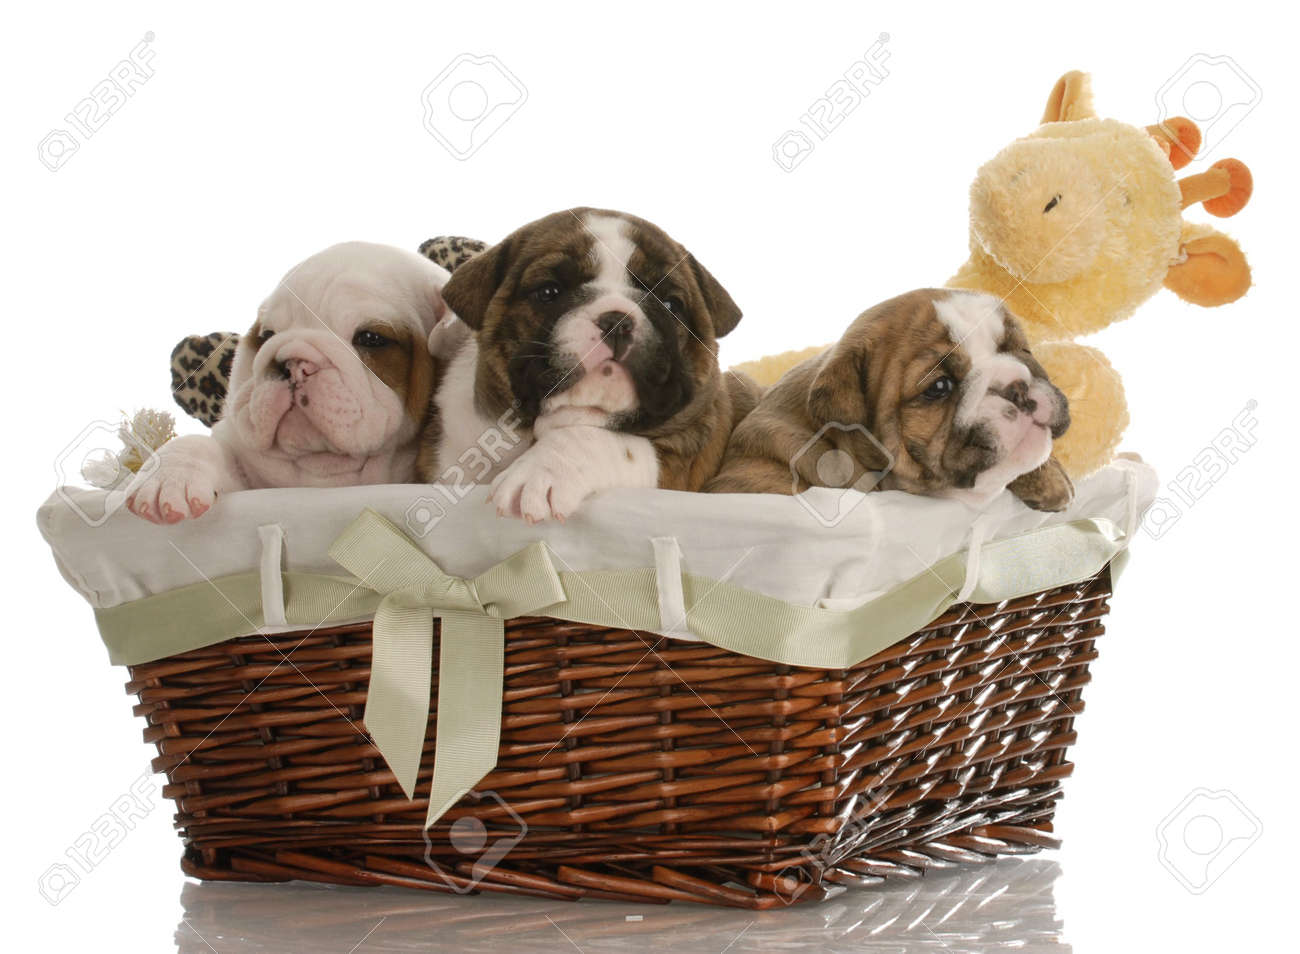 Four Week Old English Bulldog Puppies In A Wicker Basket With